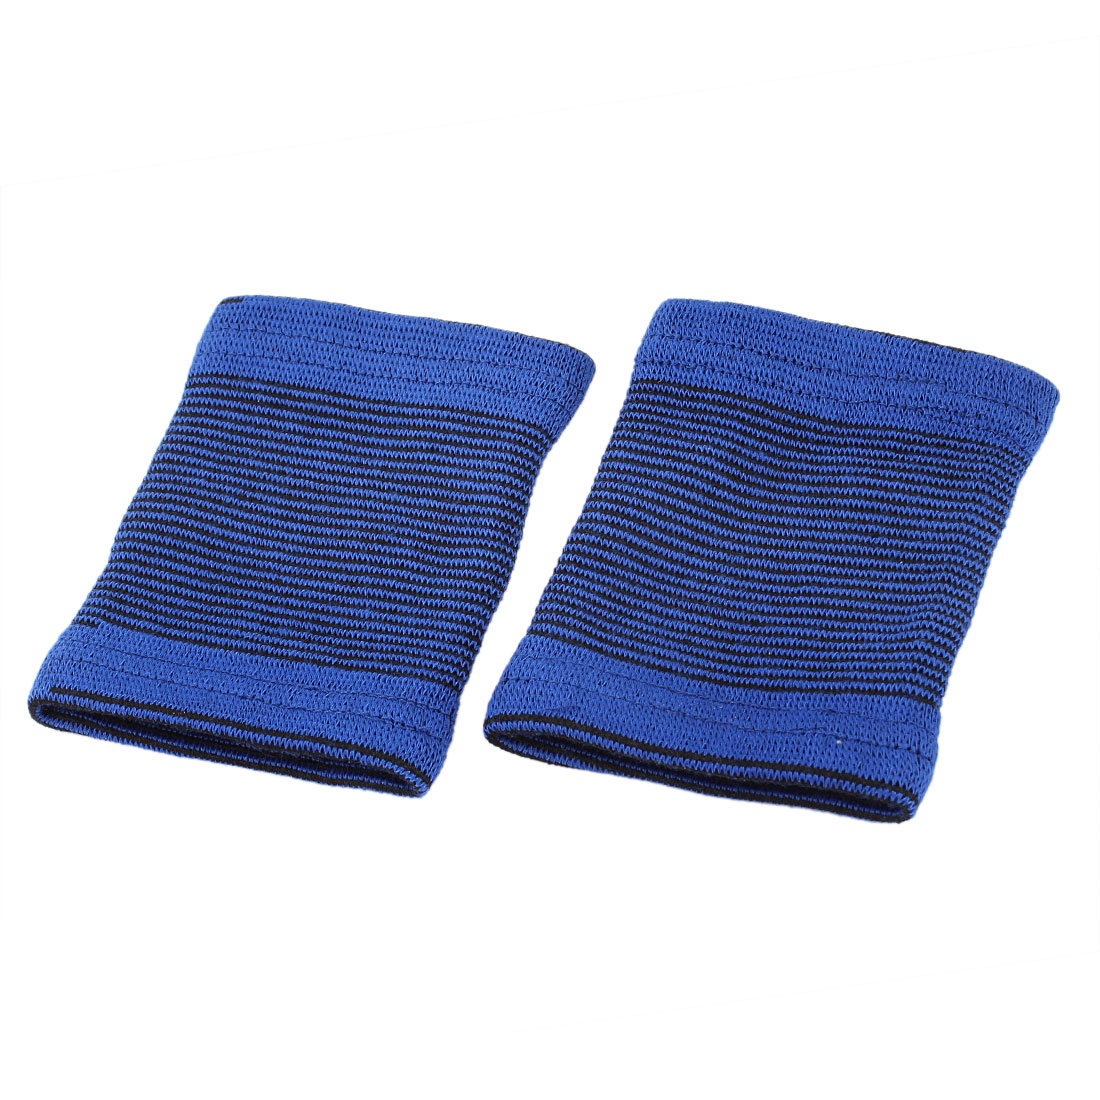 Sports Striped Stretchy Pullover Wrist Support Protectors Blue Pair